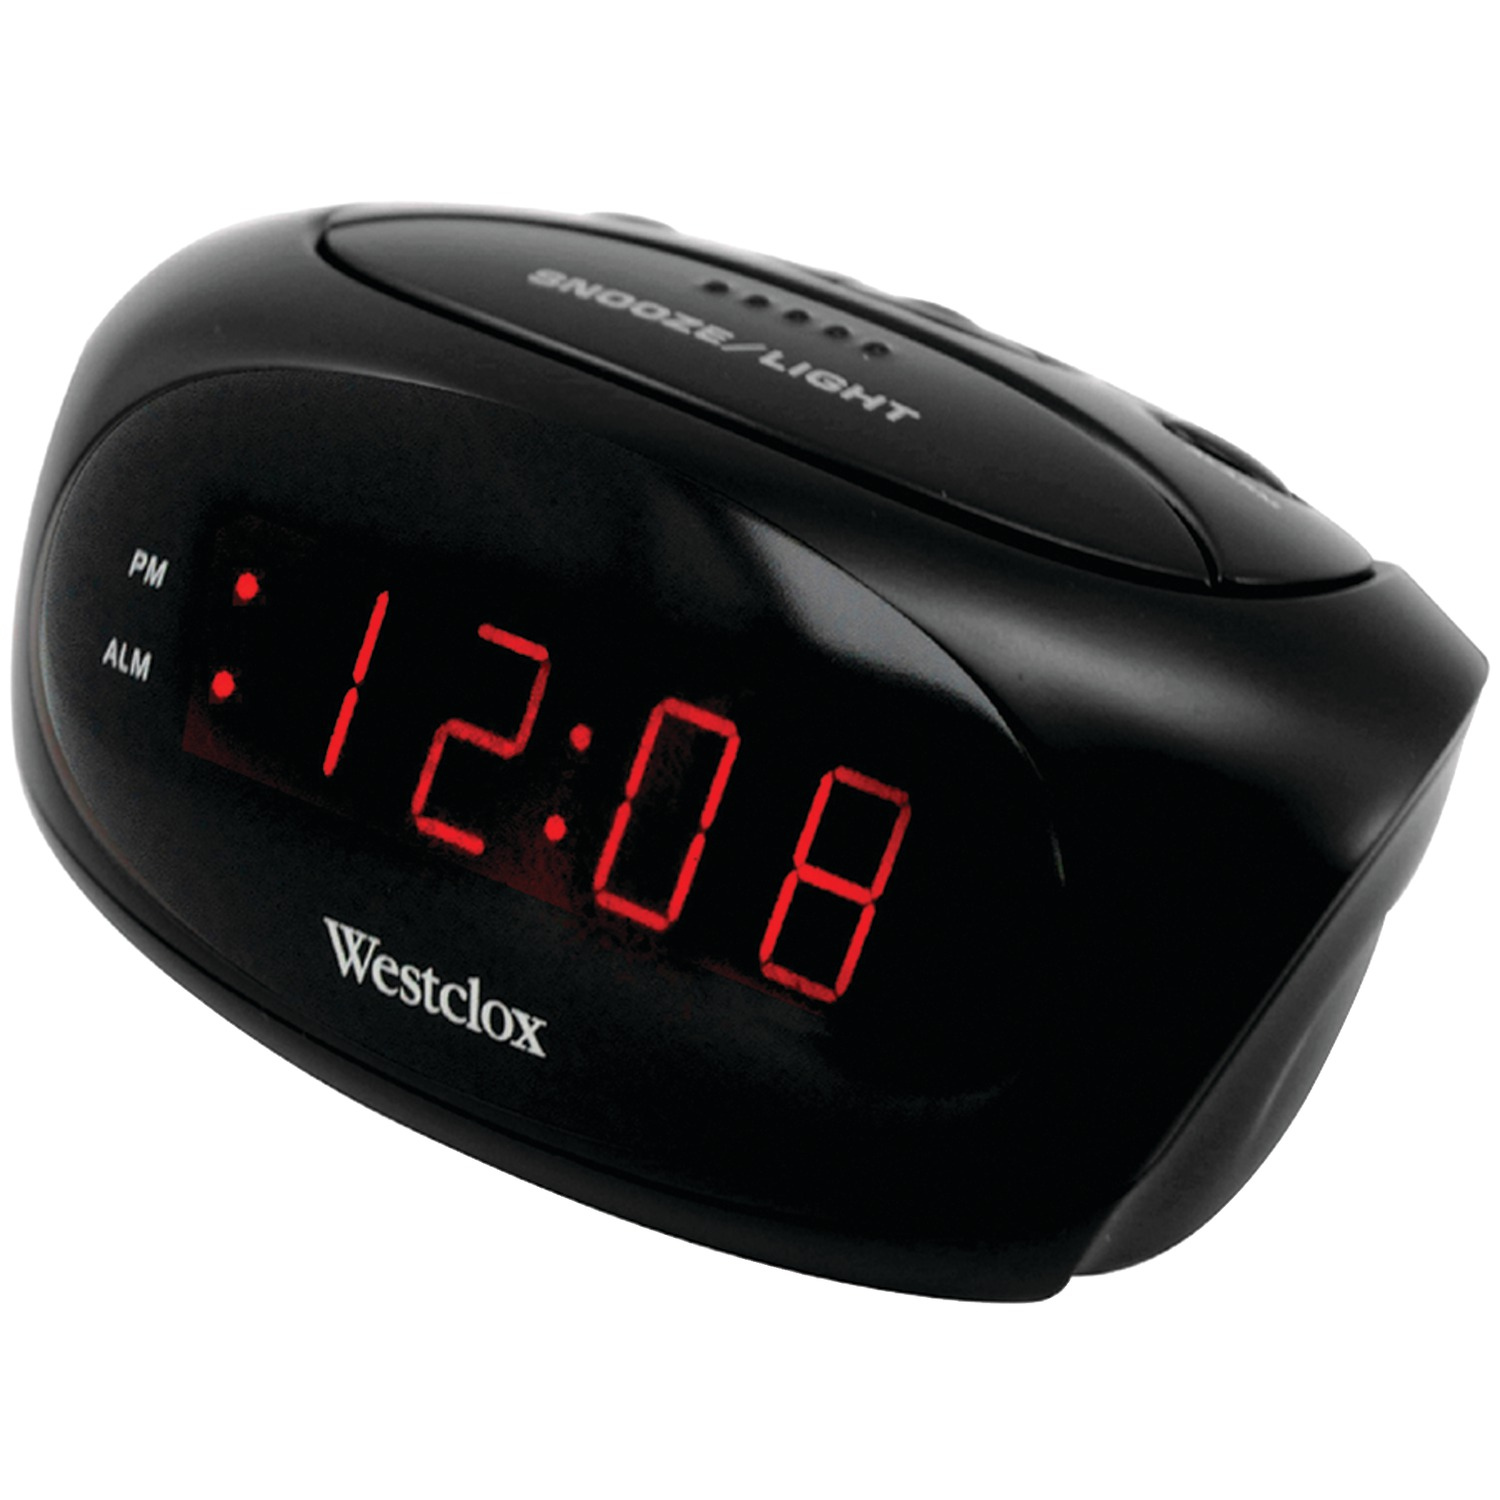 Westclox 70044A Super-Loud Led Electric Alarm Clock (Black)